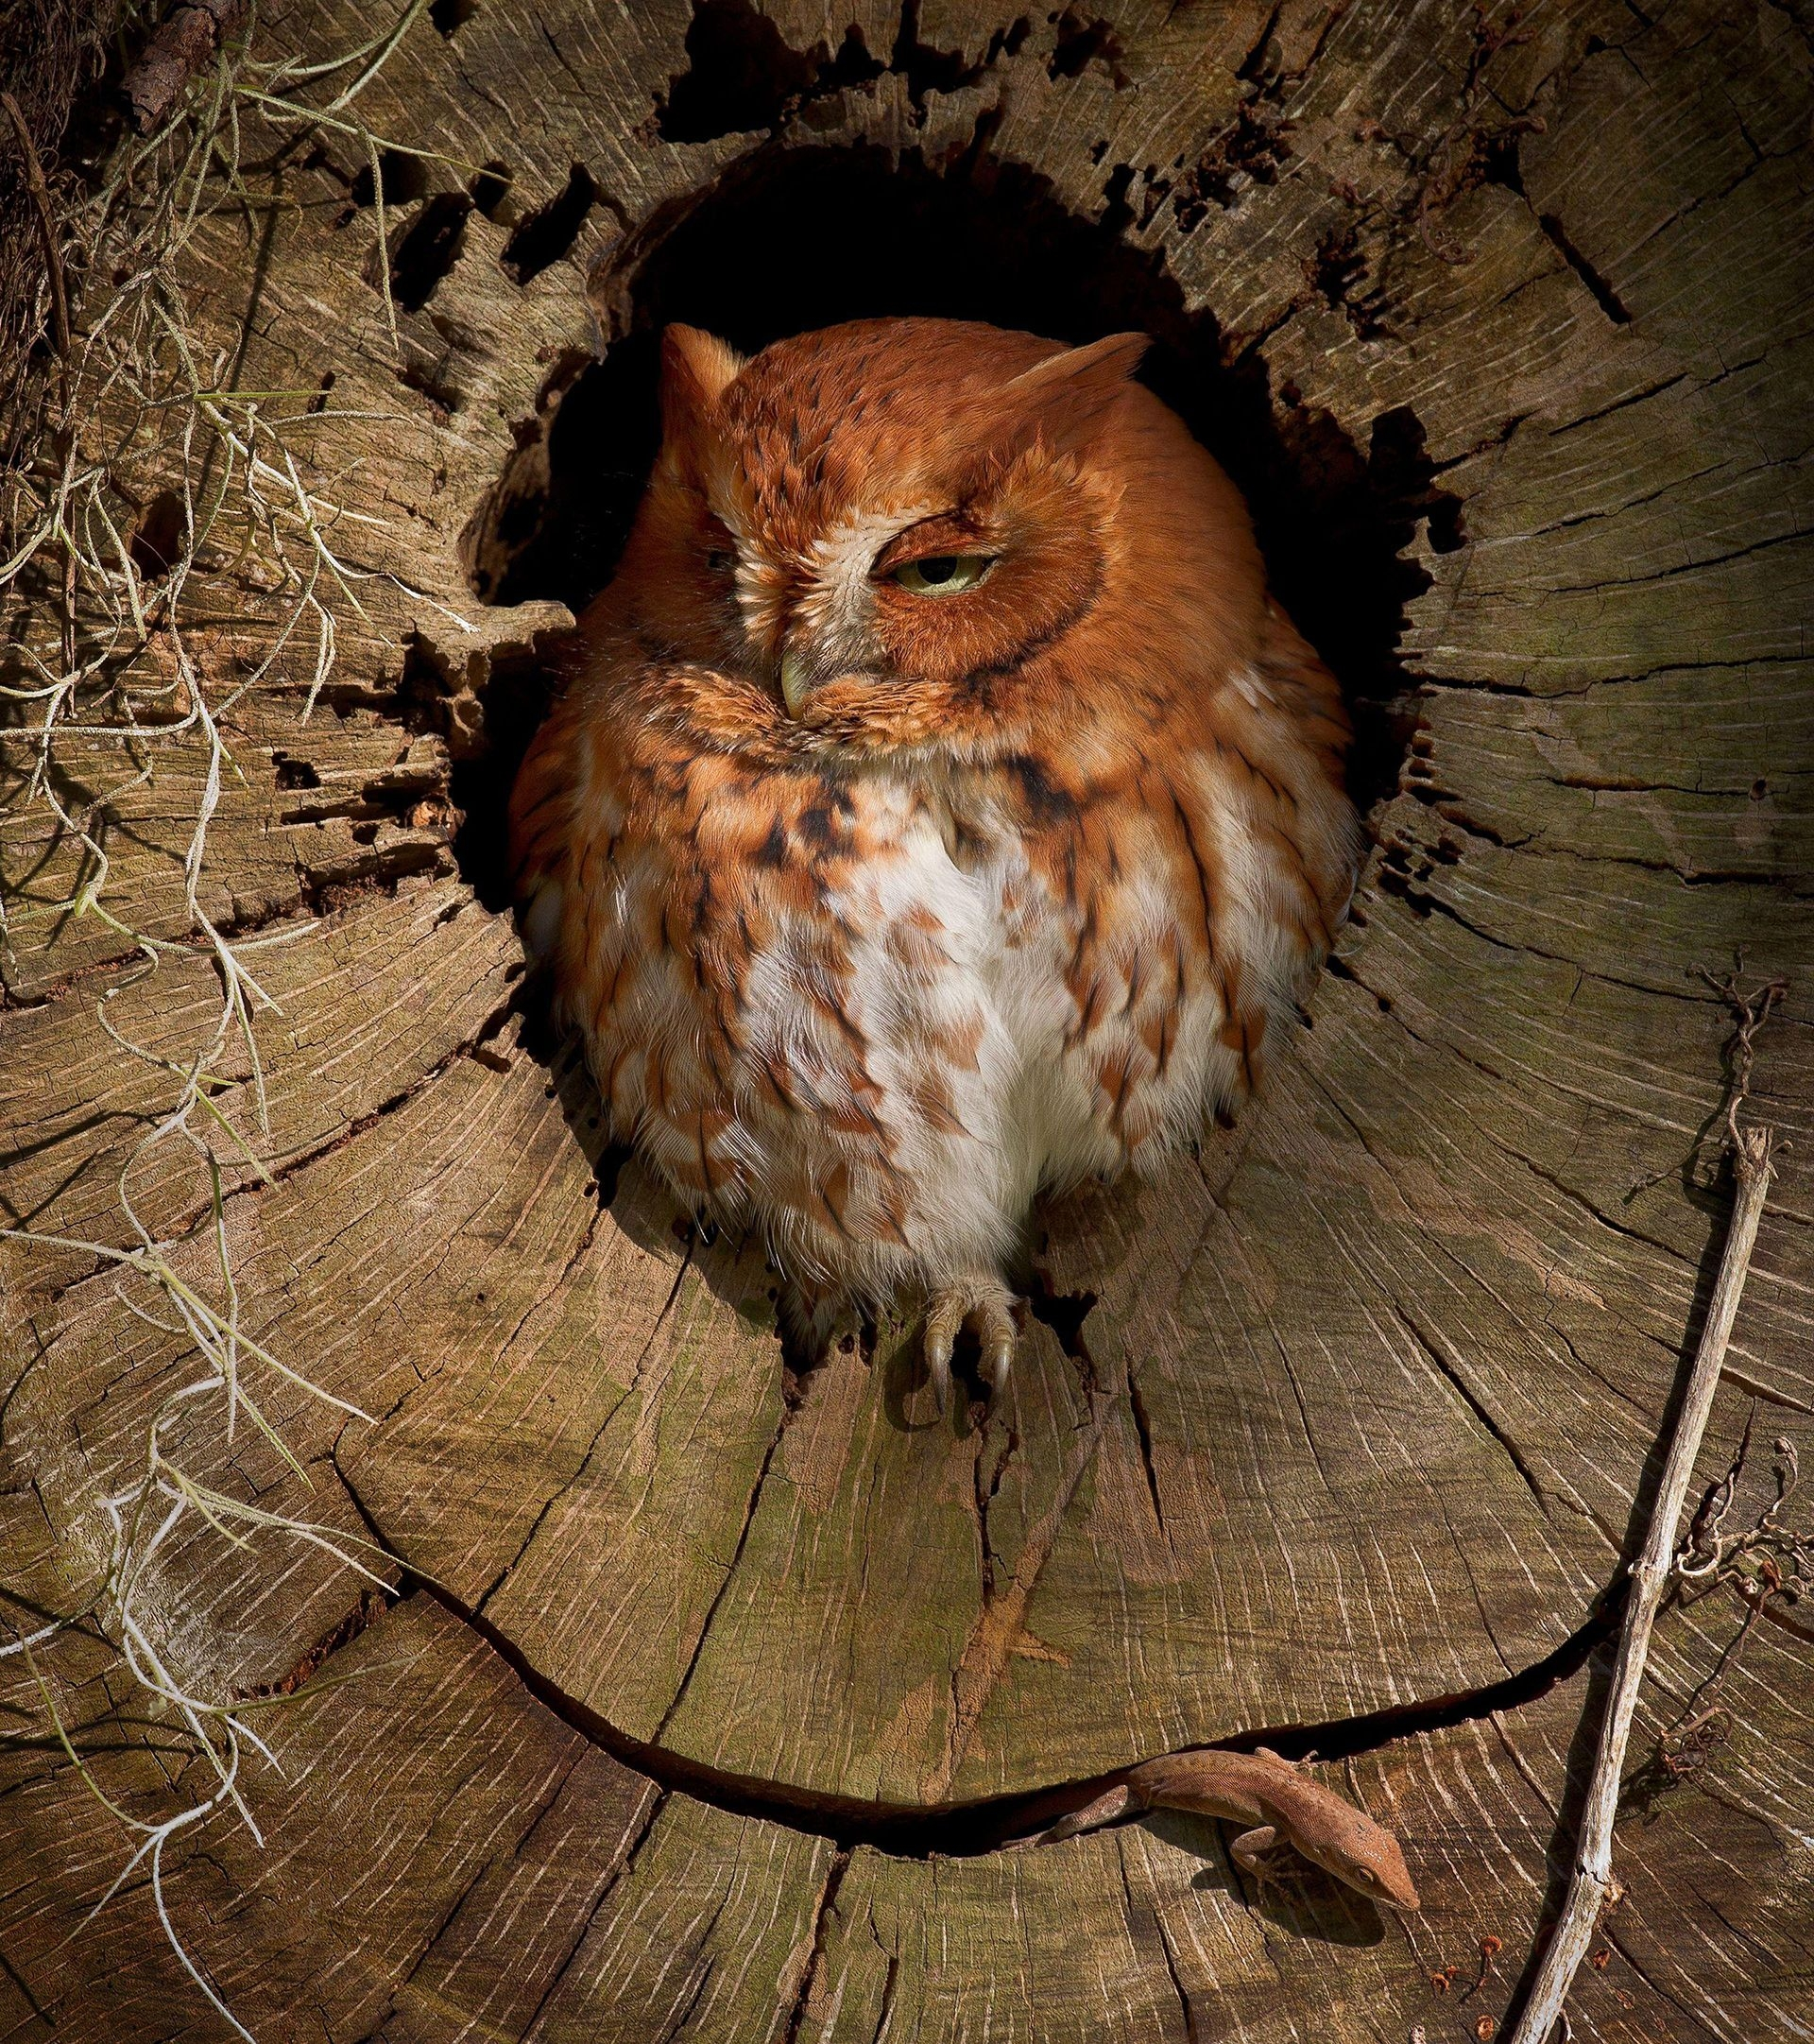 Photograph by Steve Ellwood, National Geographic Your Shot